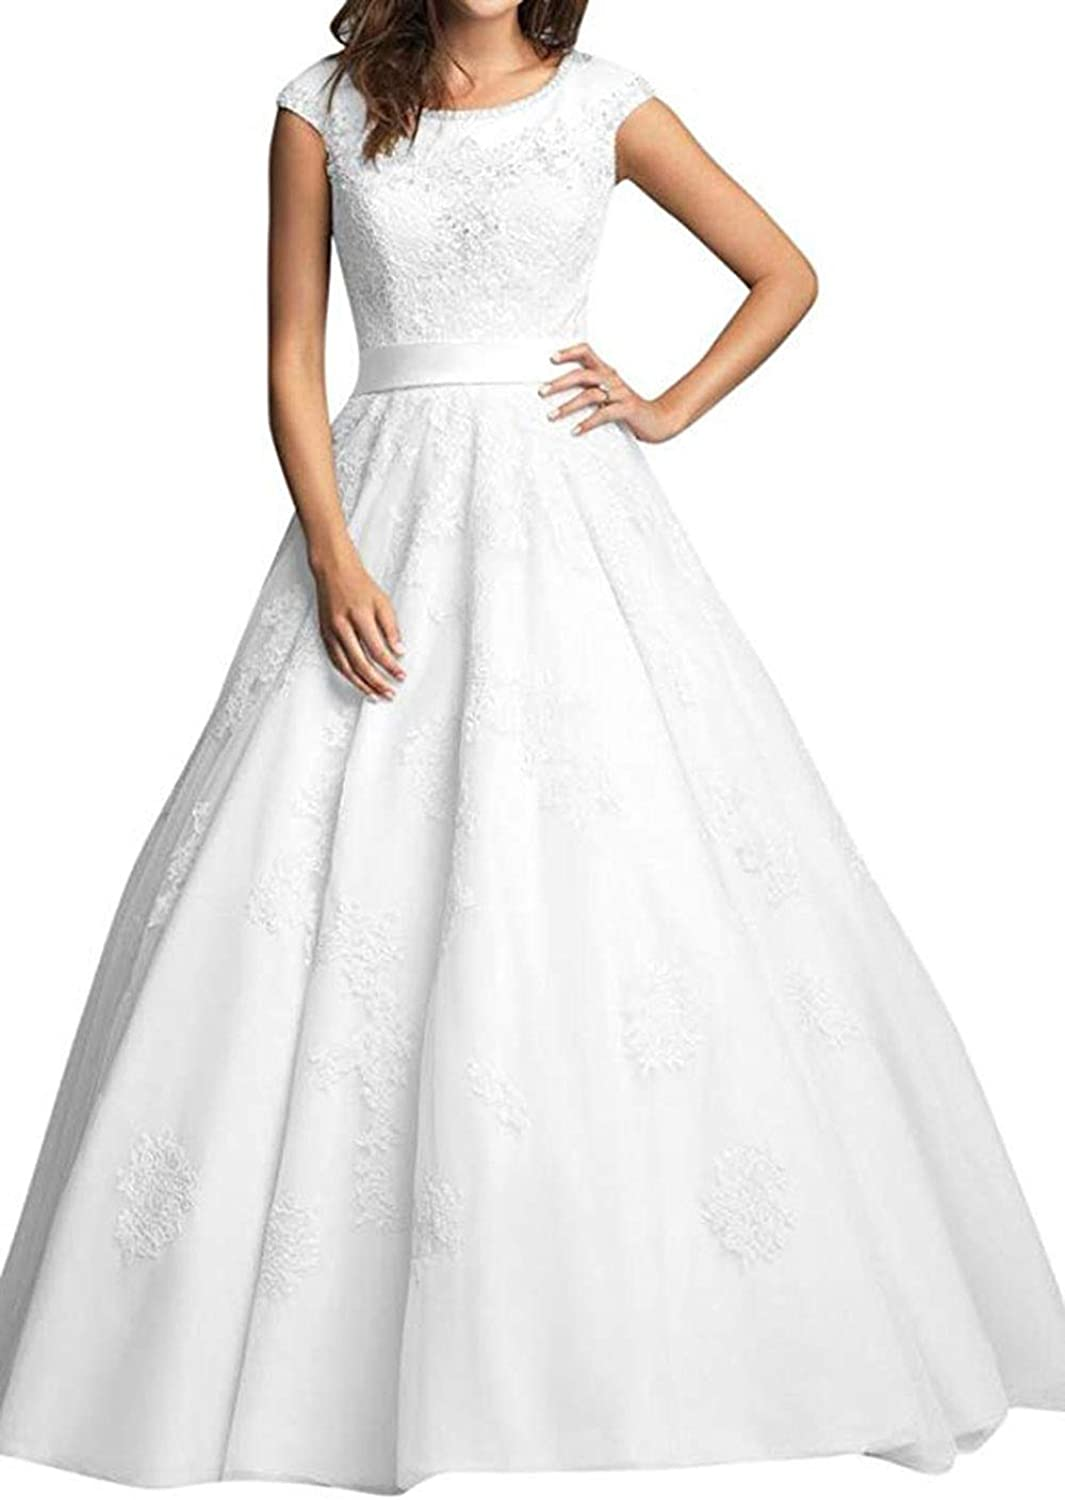 WJBRIDE Women's Lace Applique Beaded Wedding Dresses for Bride Long 2019 Cap Sleeves Wedding Gowns with Belt